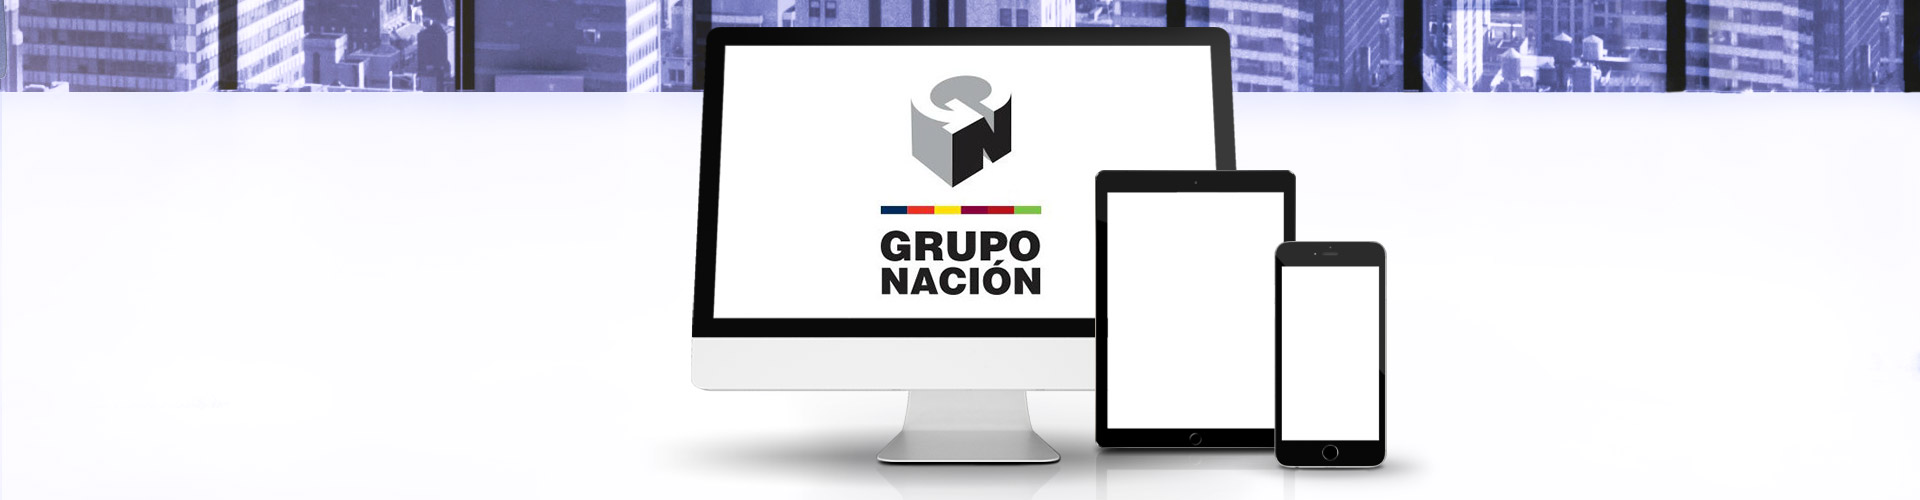 Header image of PageSuite Collaborate with Grupo Nacion